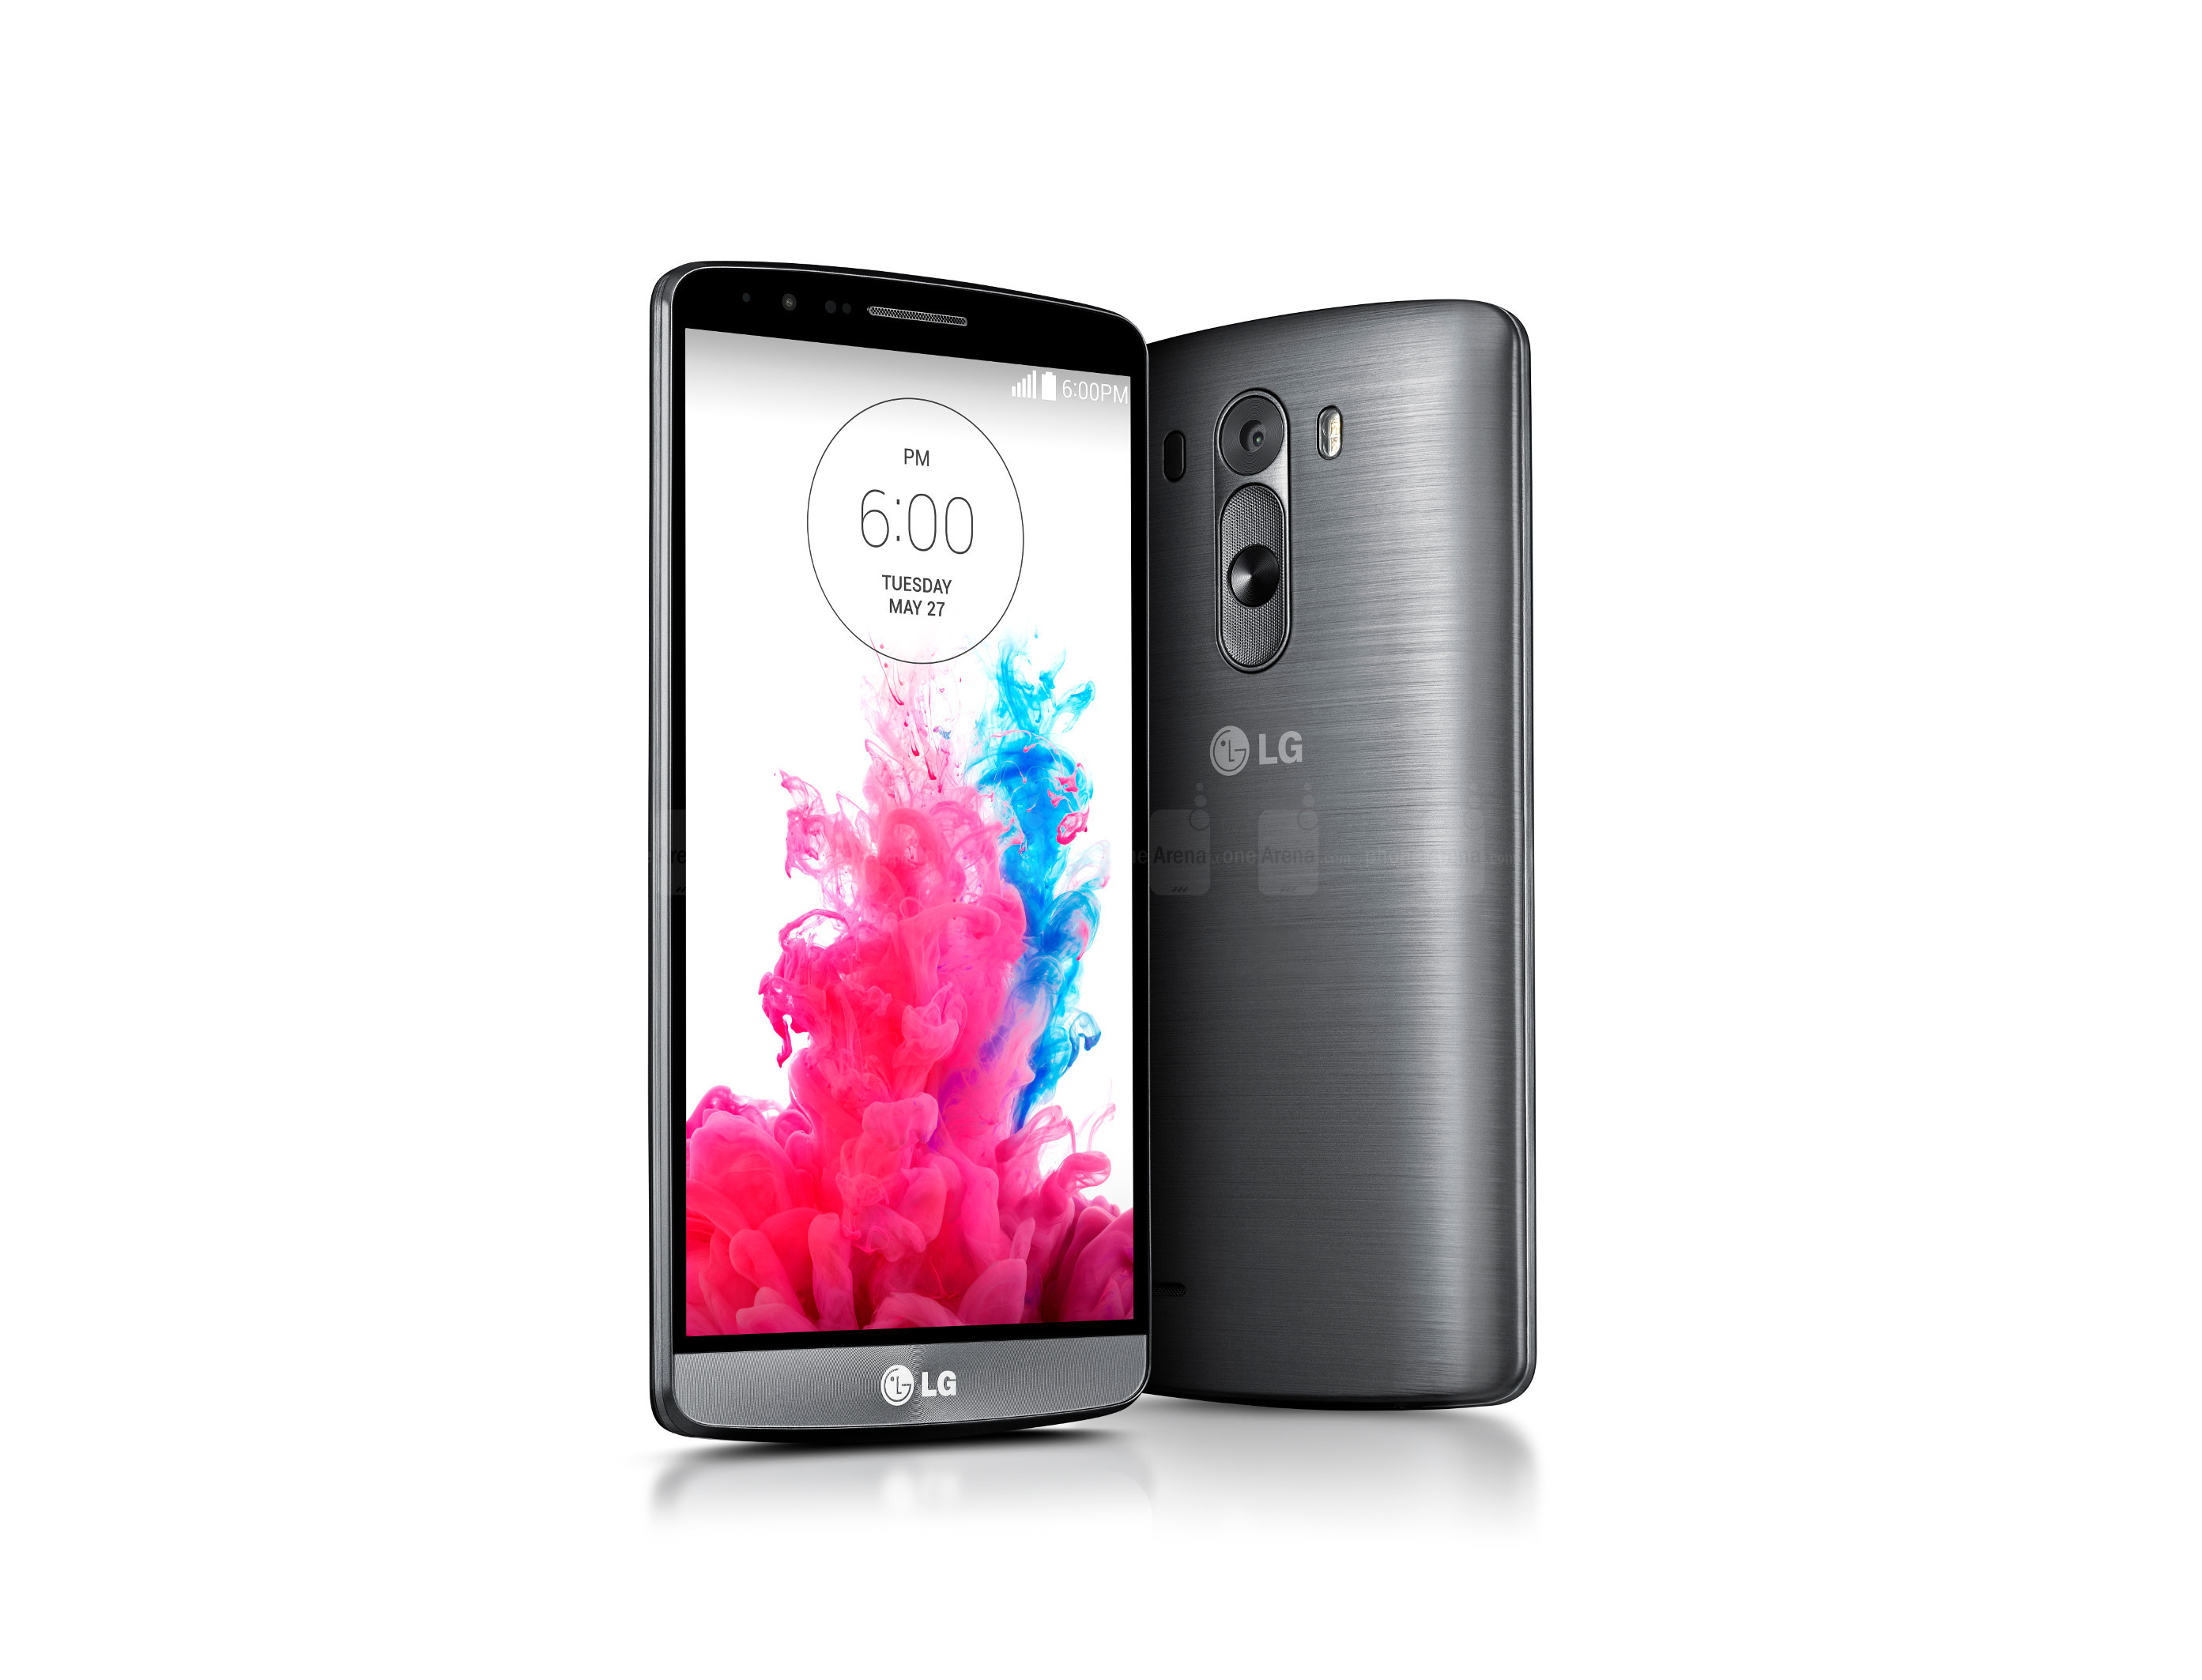 LG G Vista: Top 3 Business Features